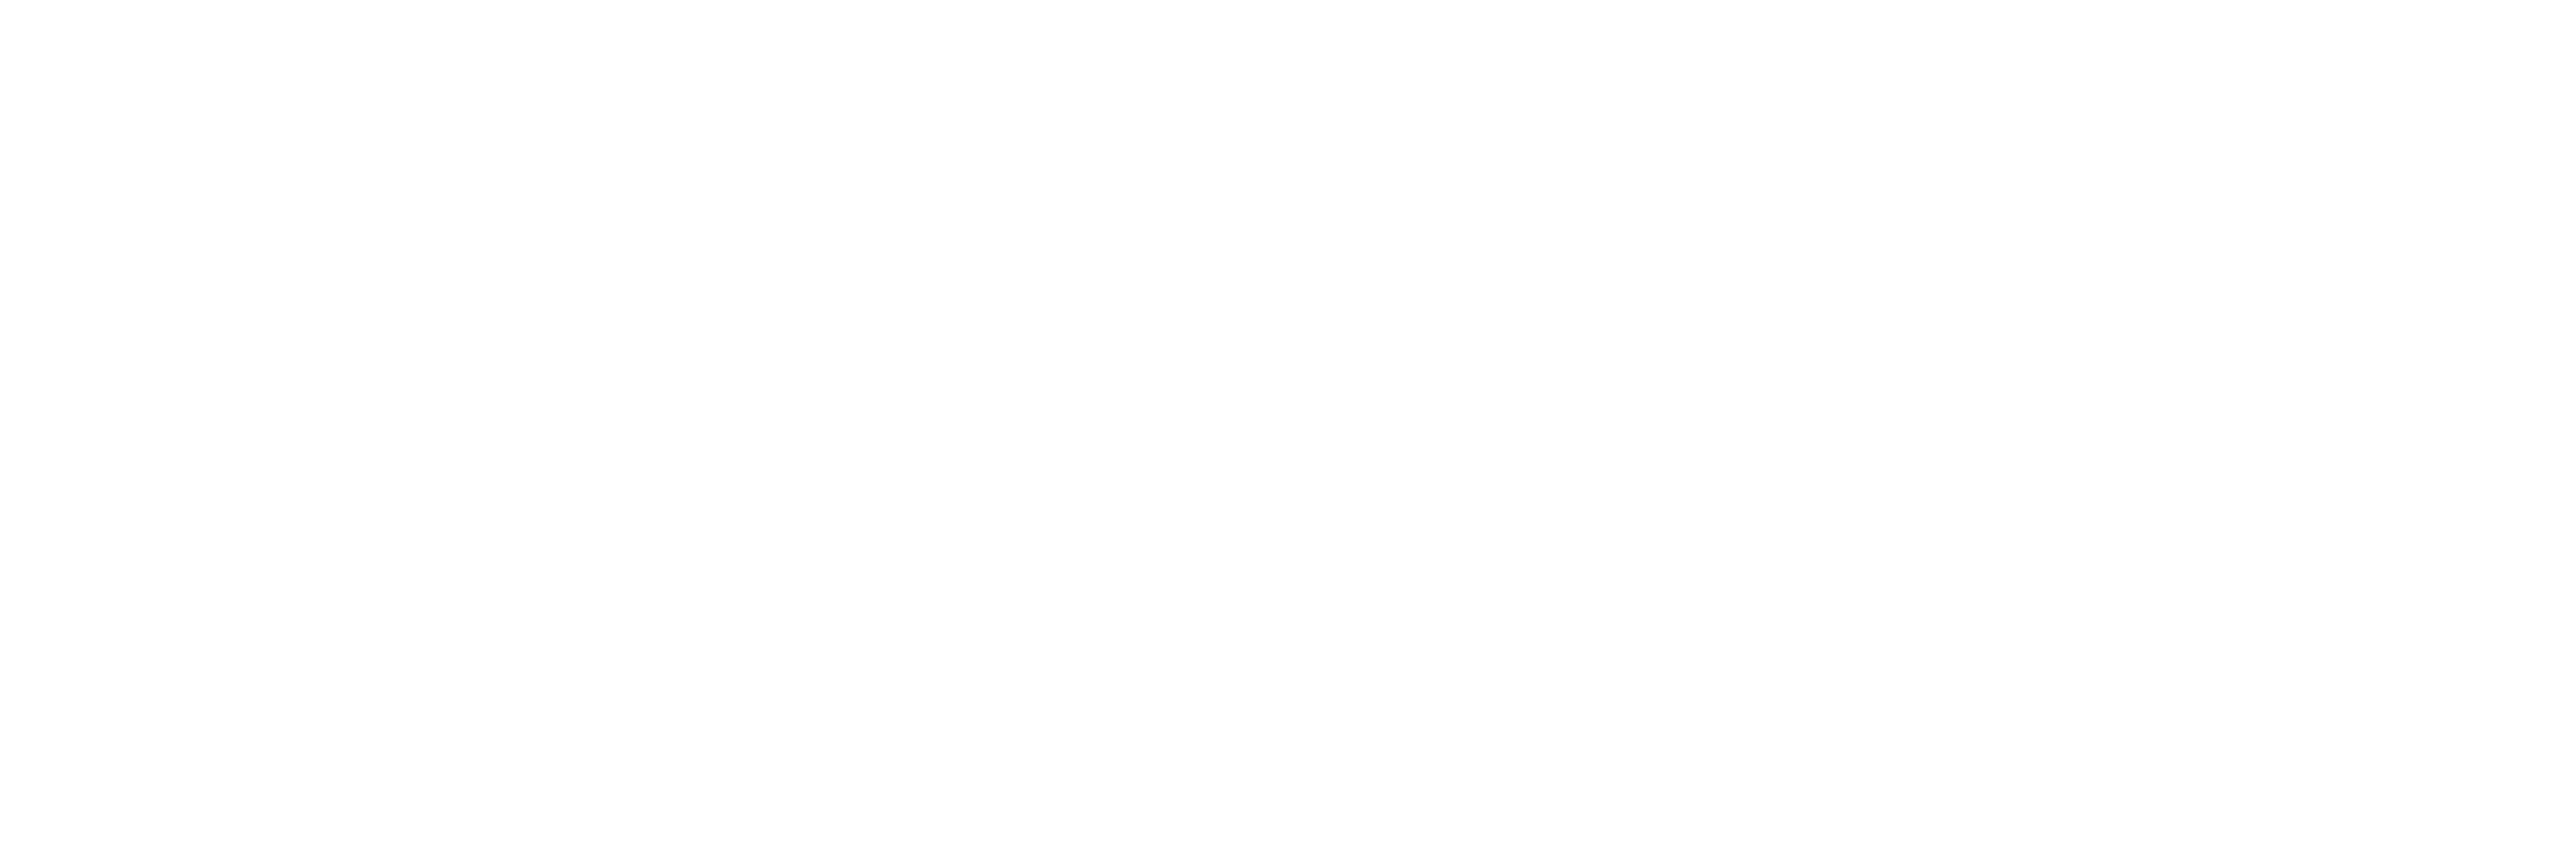 Family programming at Warm Beach Camp and Conference Center, Stanwood, WA; near Seattle.